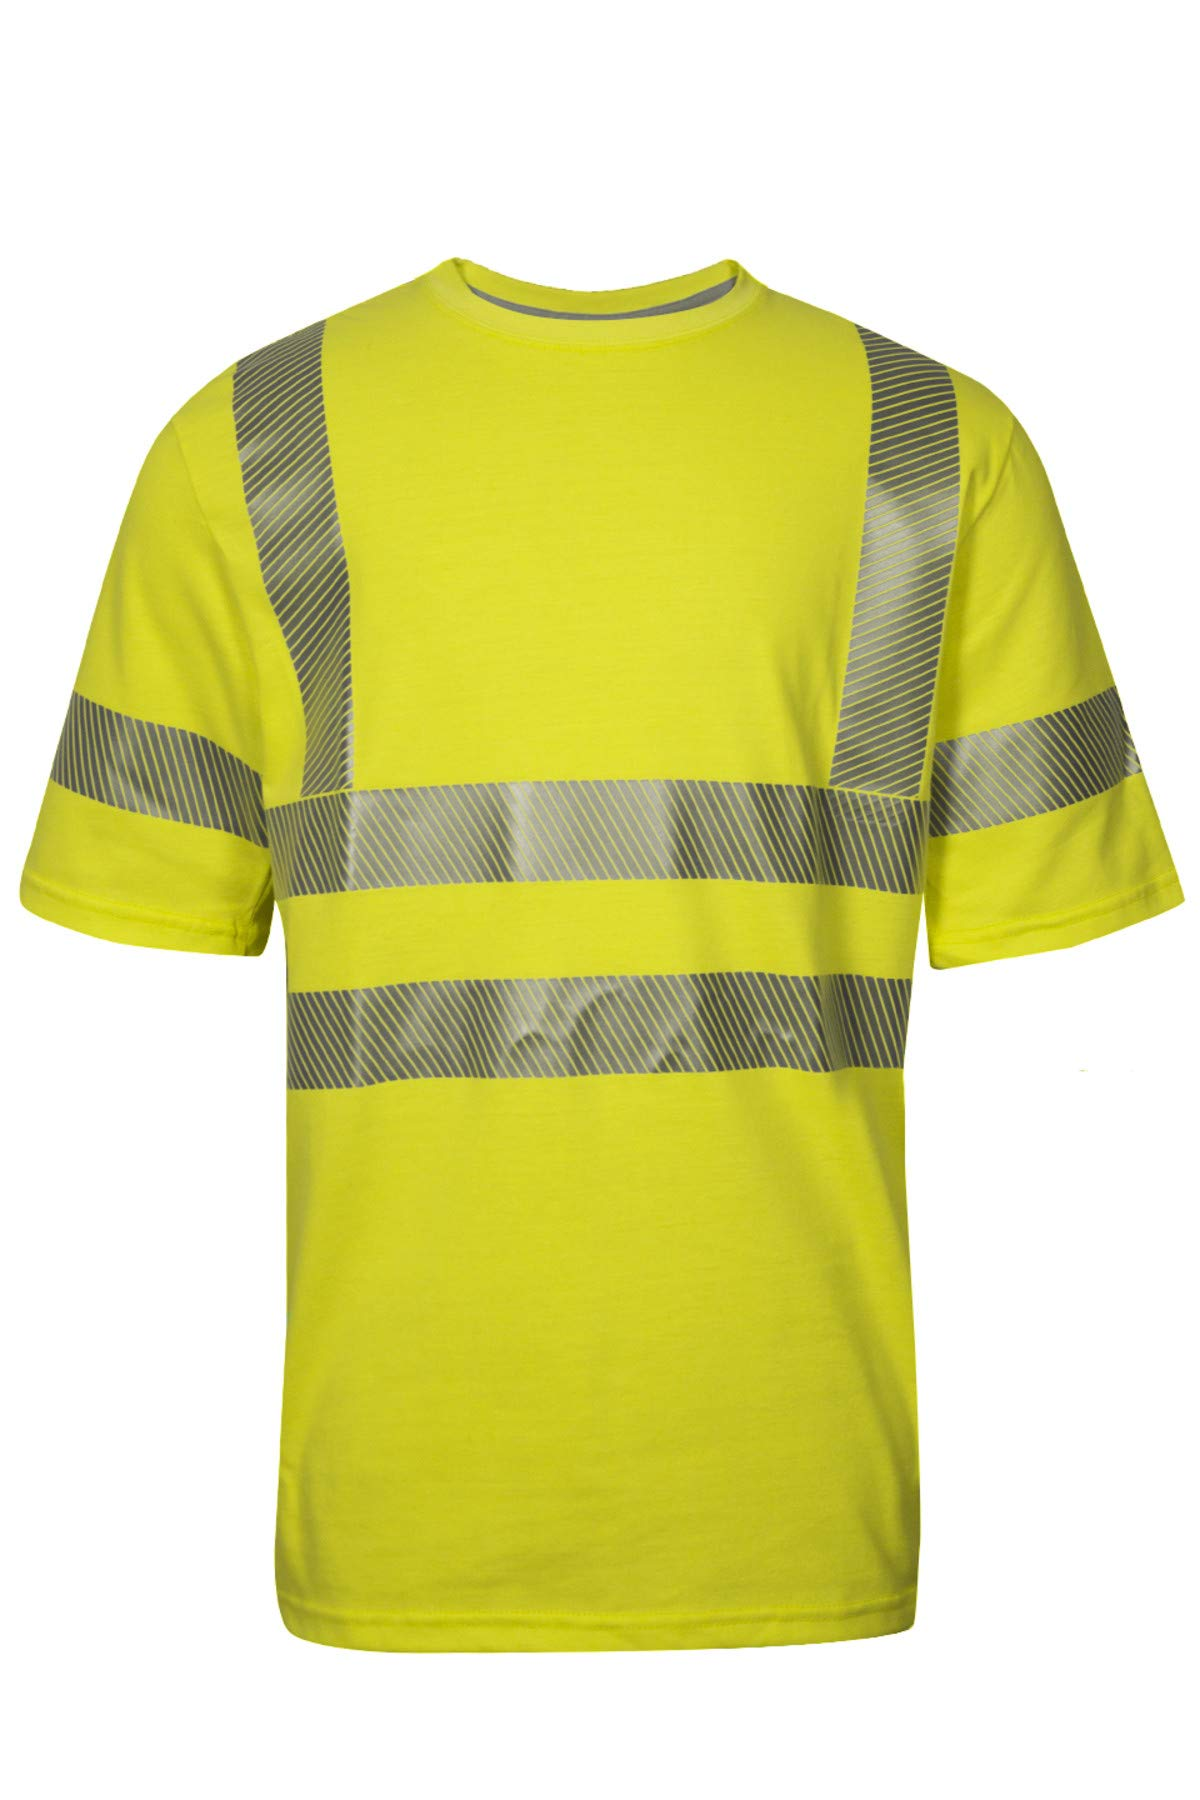 National Safety Apparel C54HYC3SM FR Class 3 T-Shirt, Small, Fluorescent Yellow